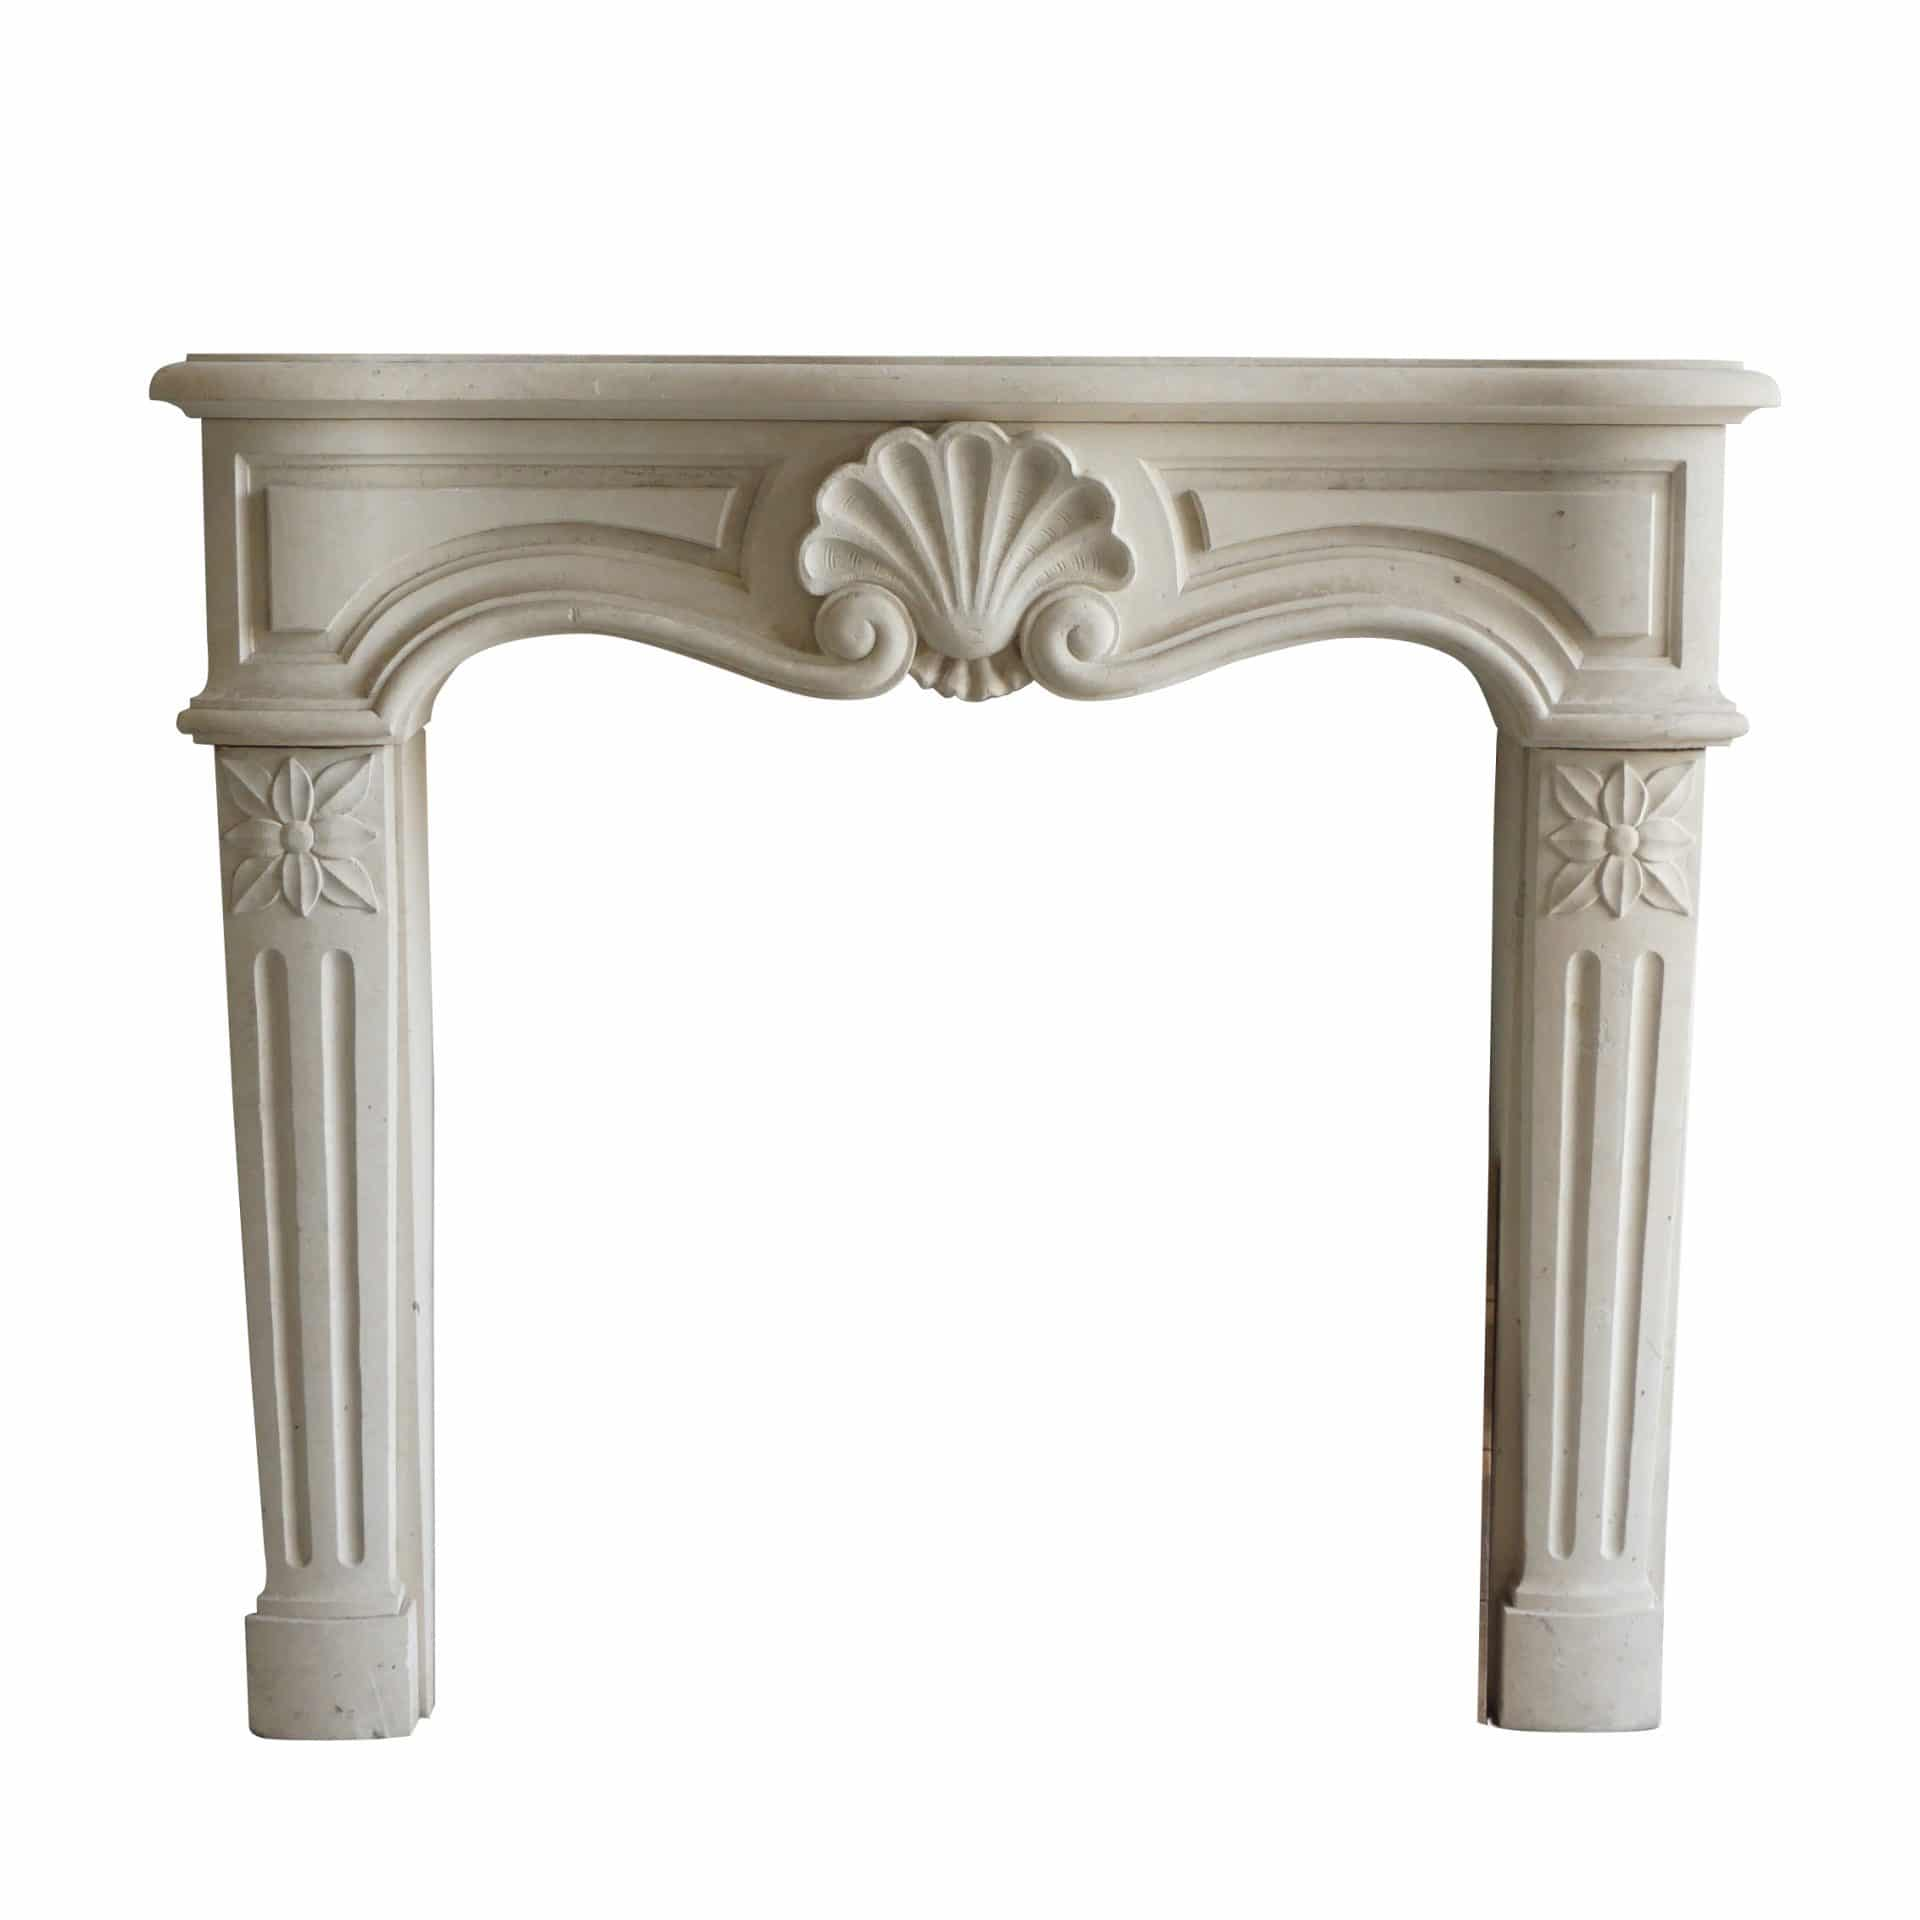 Louis XV style hand carved limestone fireplace surround with centered shell